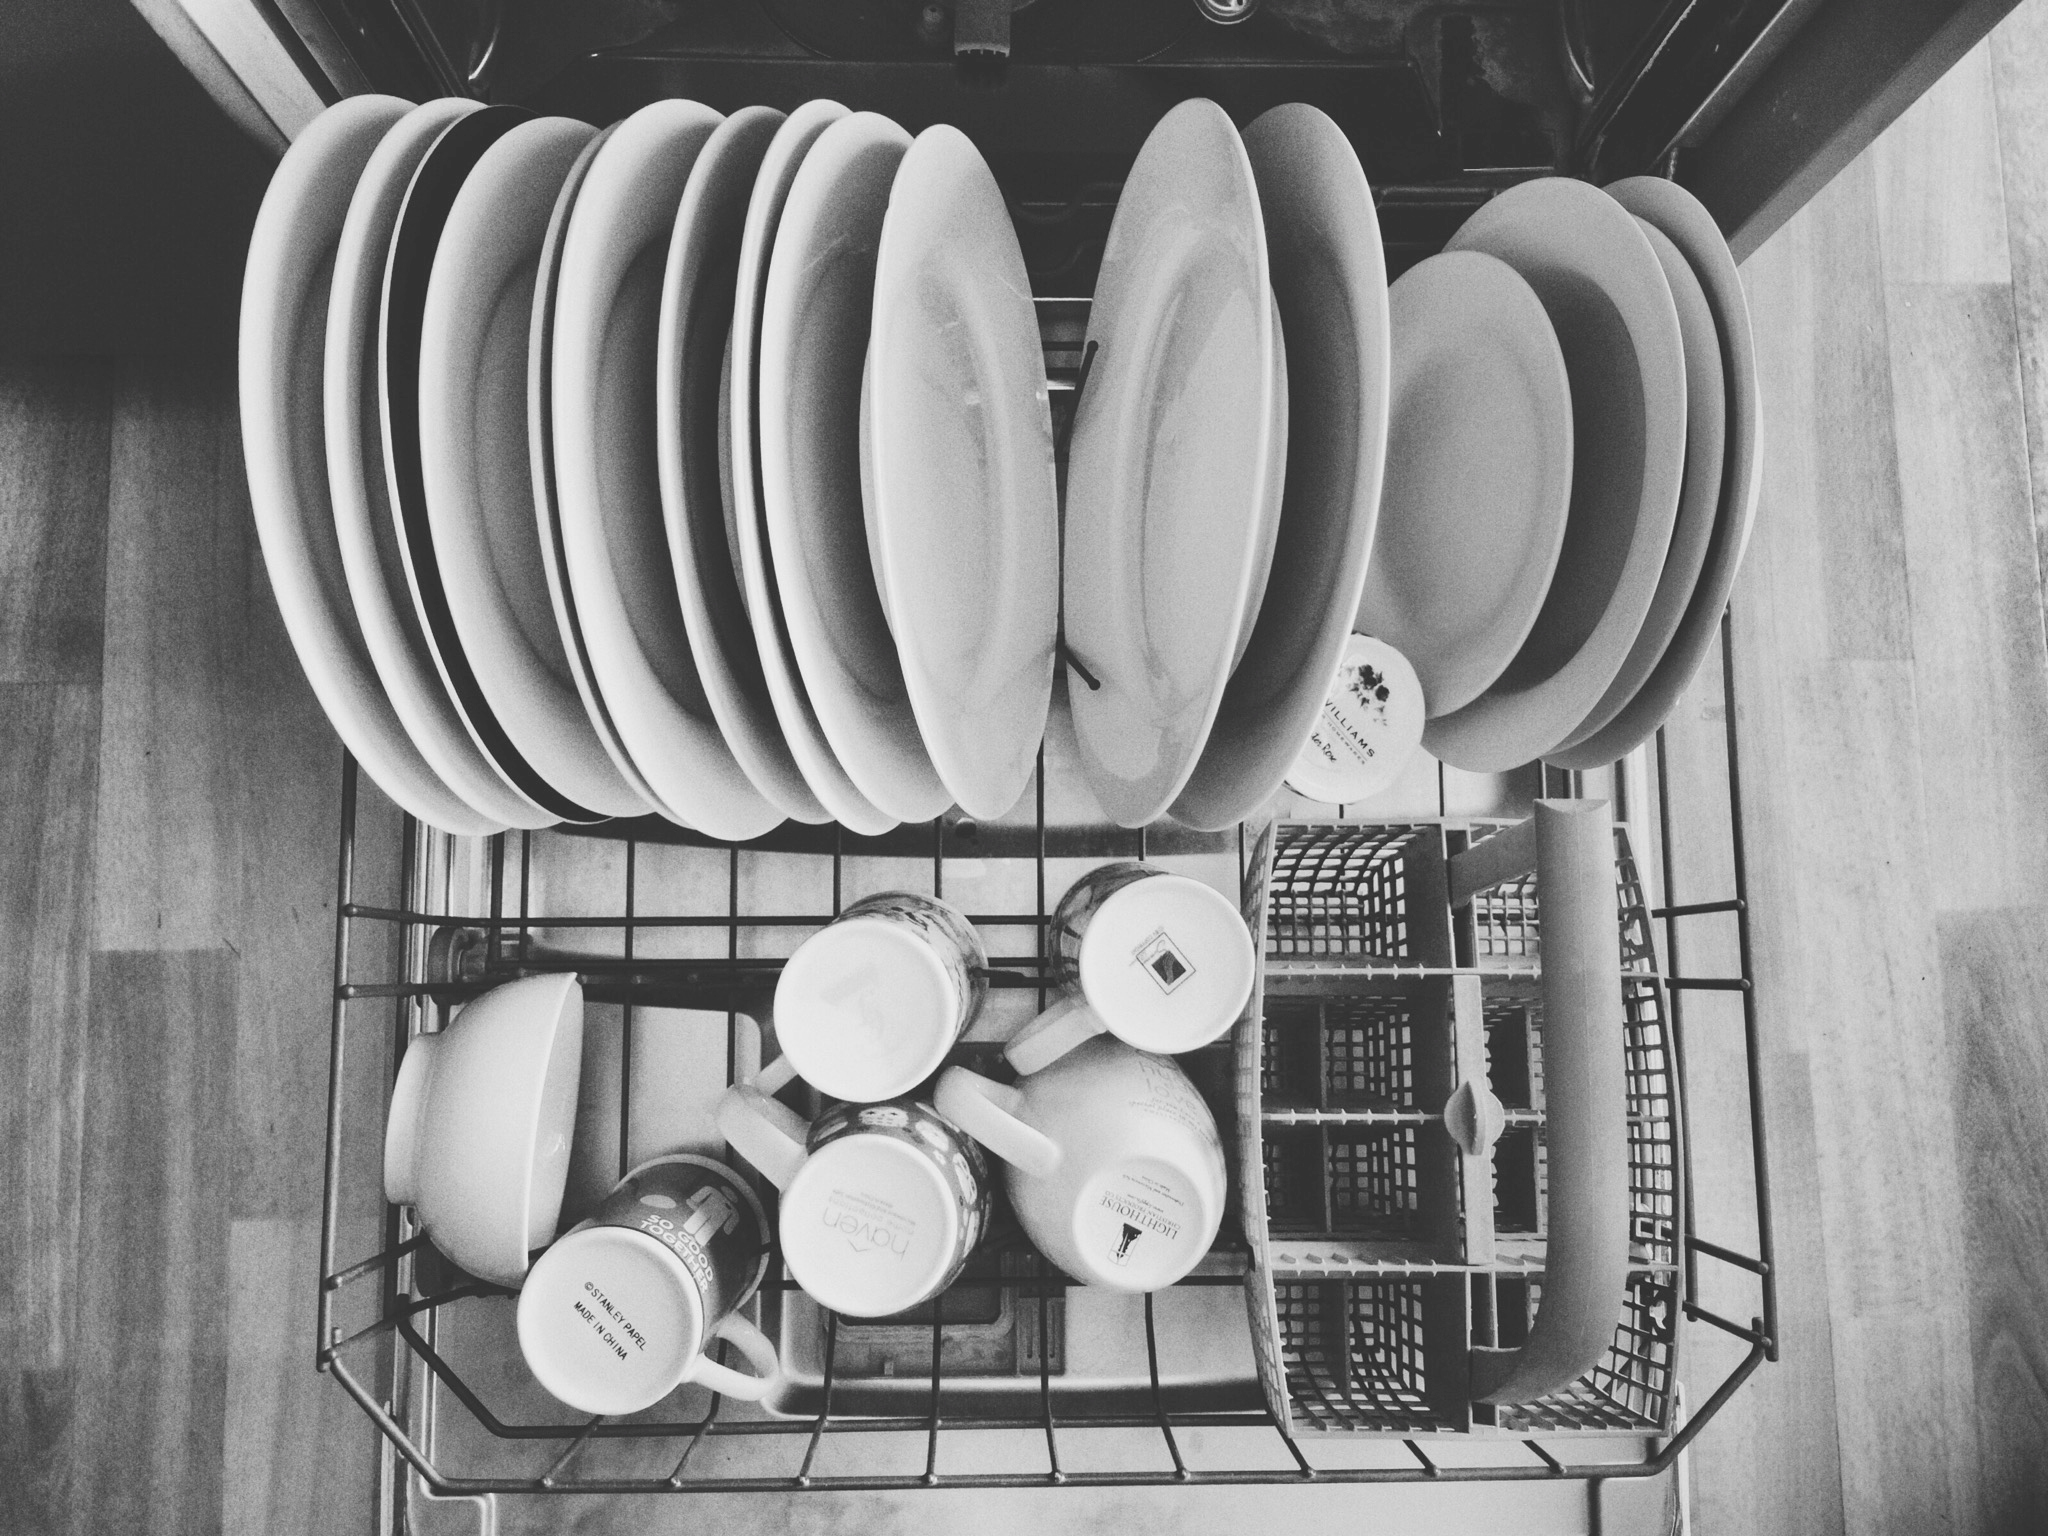 High Angle View Of Utensils In Dishwasher